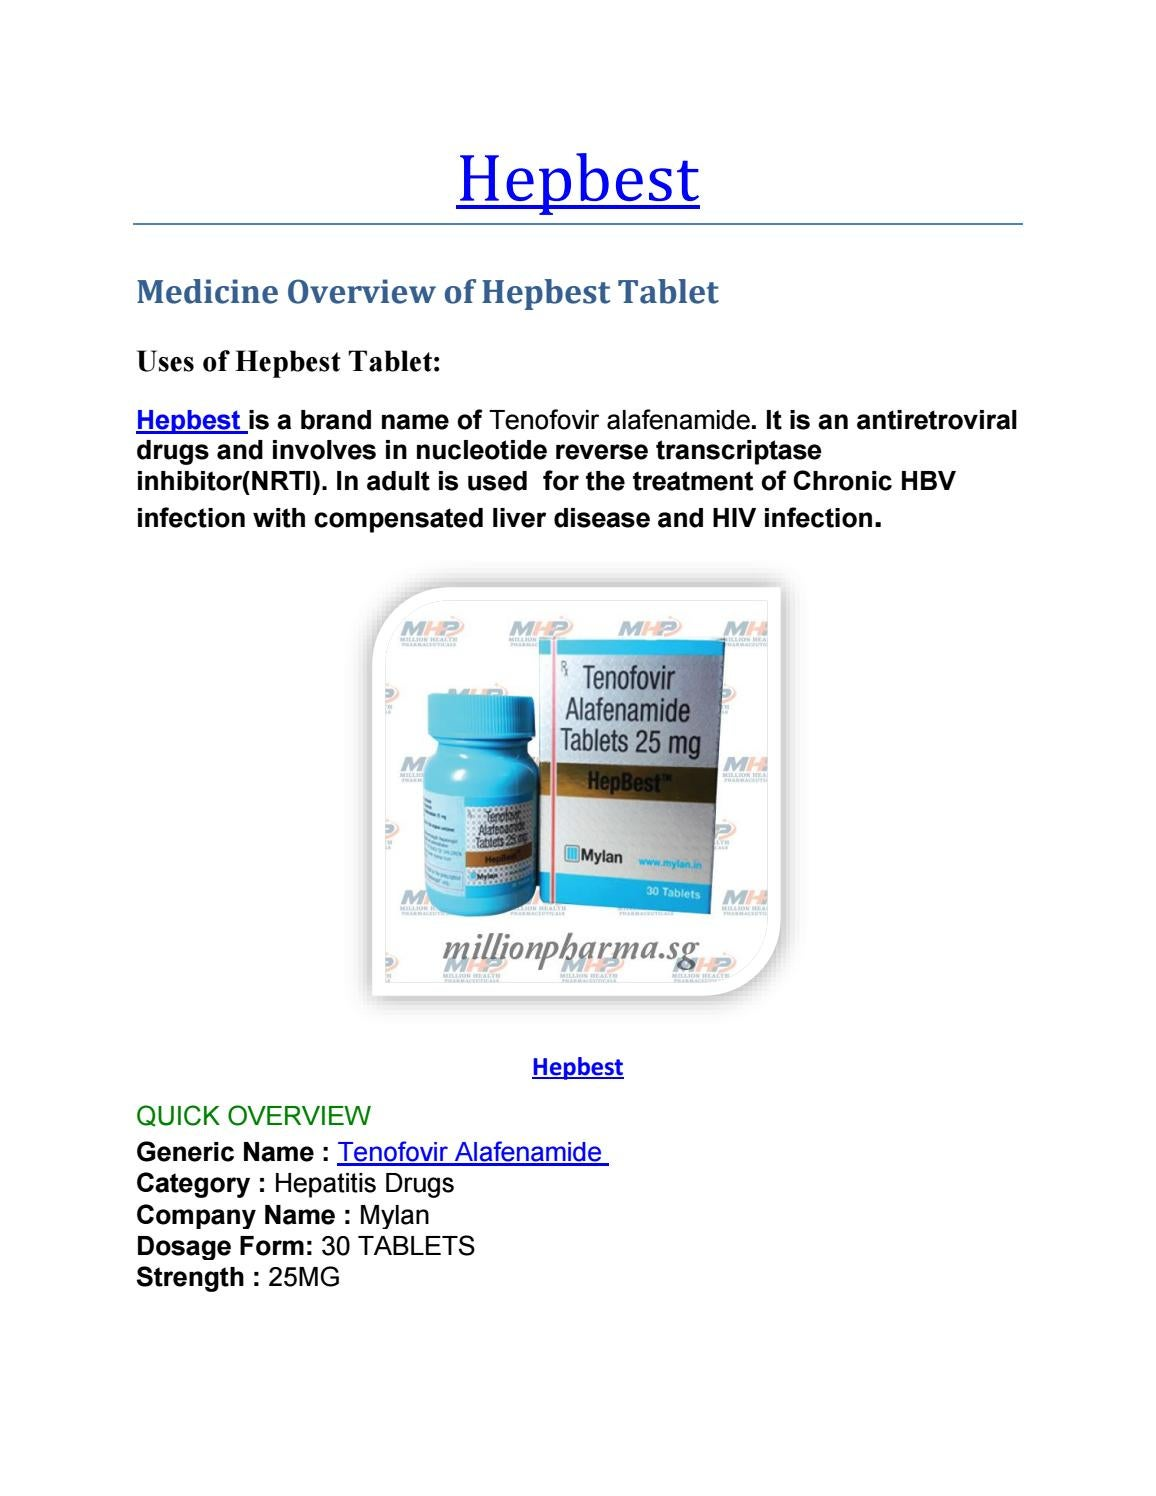 Hepbest 25 mg Tablet : Uses, Price, Side Effects, -Mylan